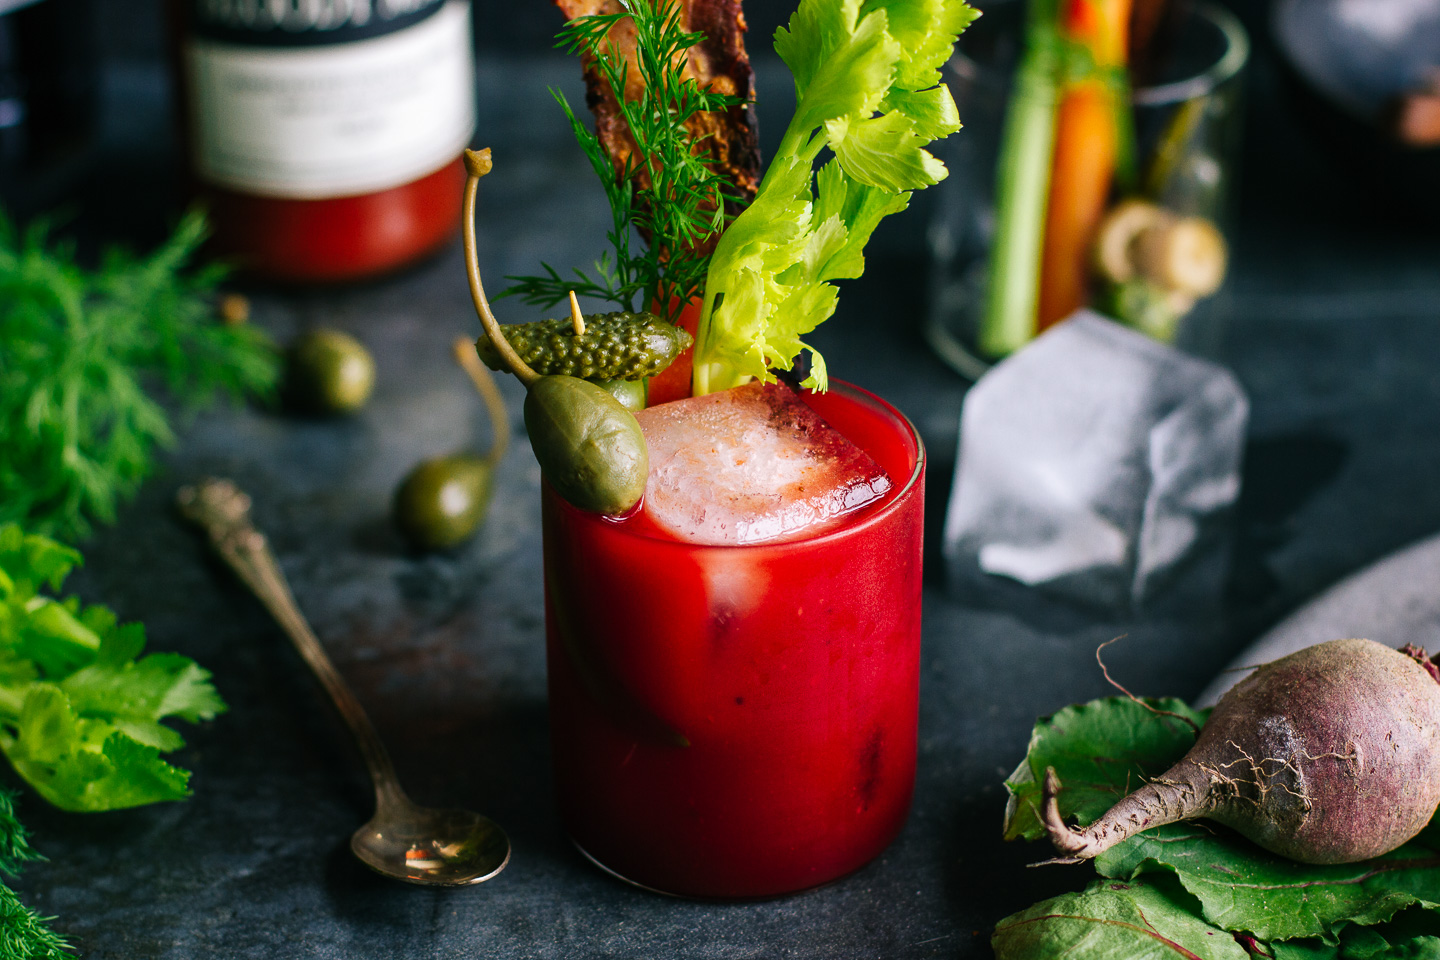 Dill & Beet Infused Bloody Mary